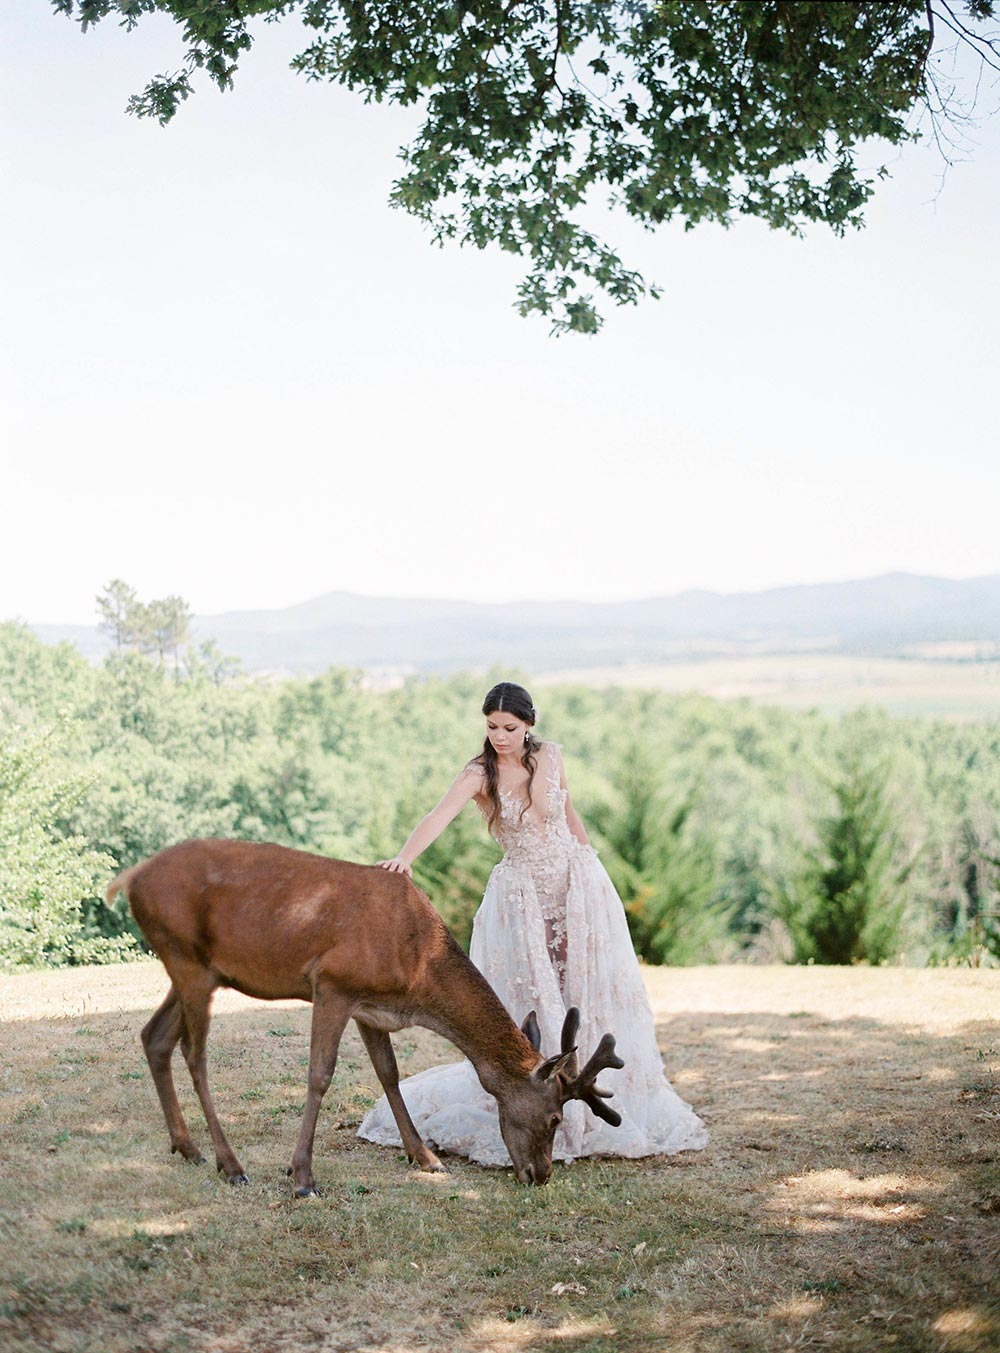 embellished wedding dress inspiration deer in countryside